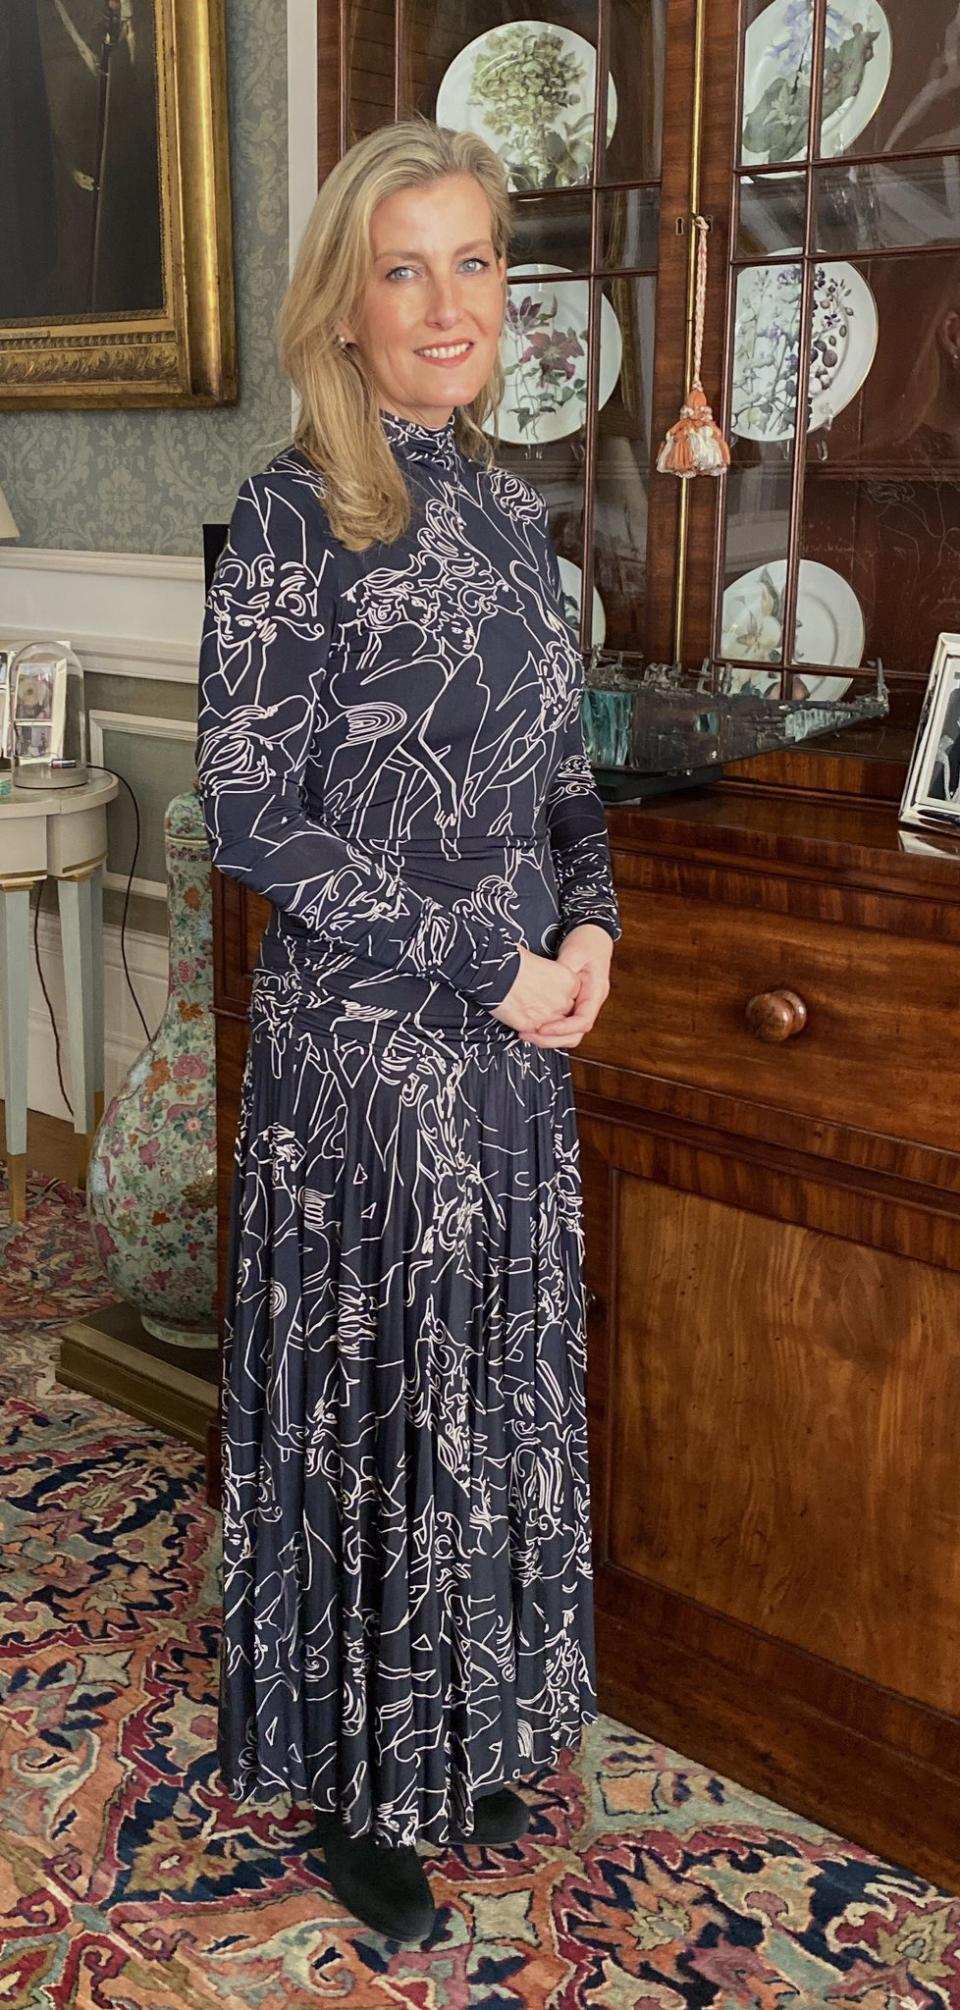 The countess wore a Victoria Beckham dress for the event. (Royal Family)